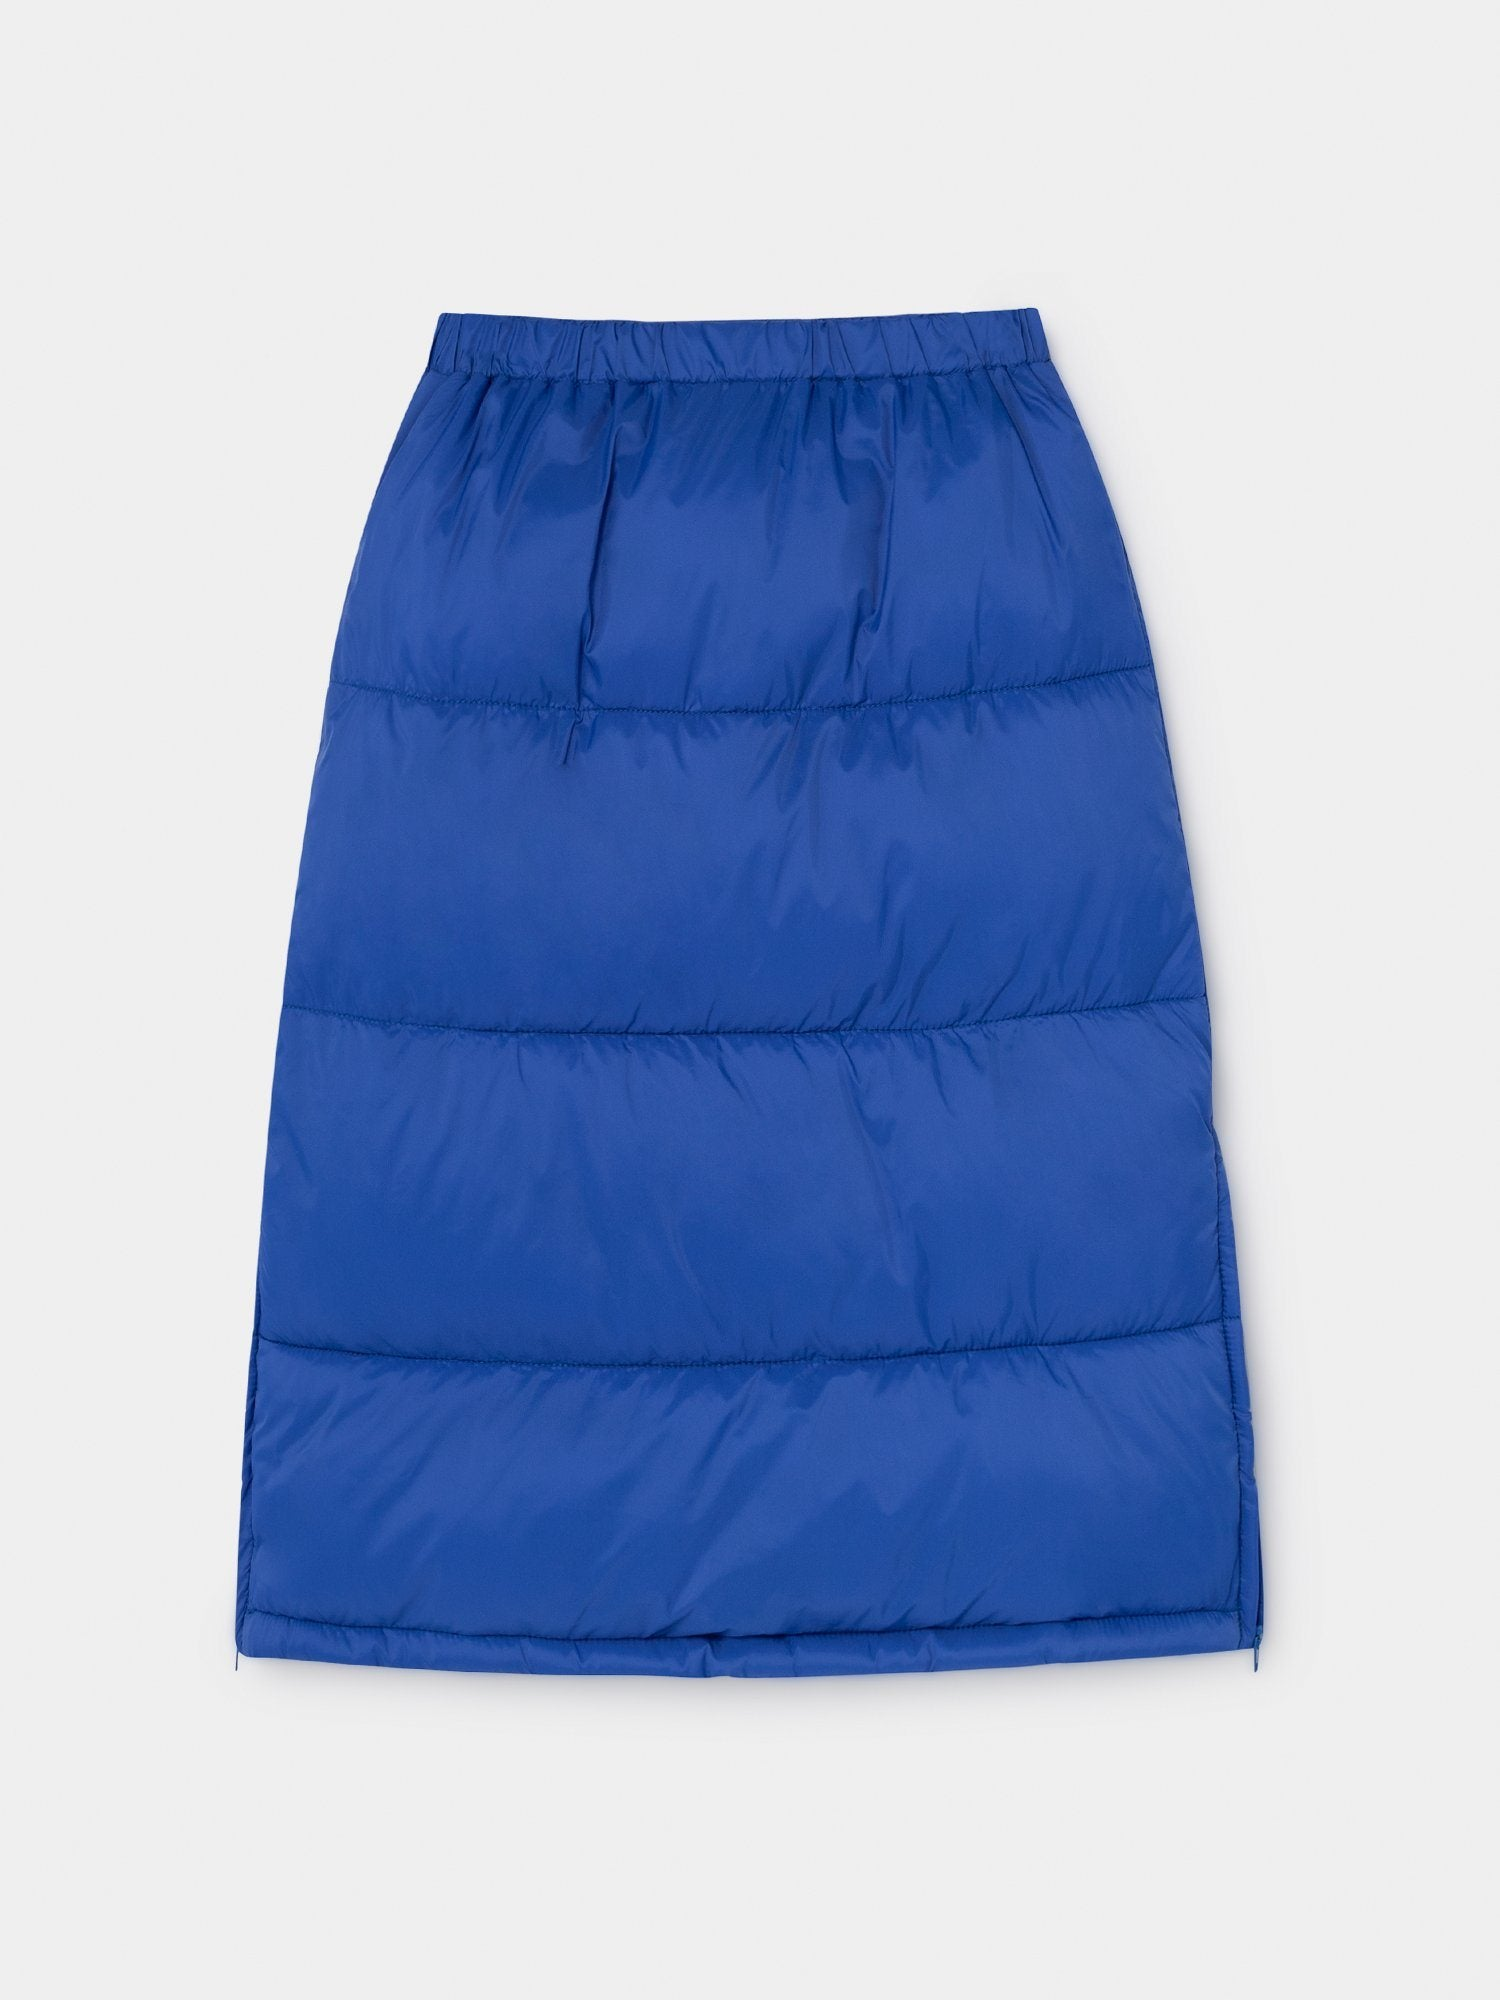 Skirt Padded Saturn Nautical Blue - Zirkuss